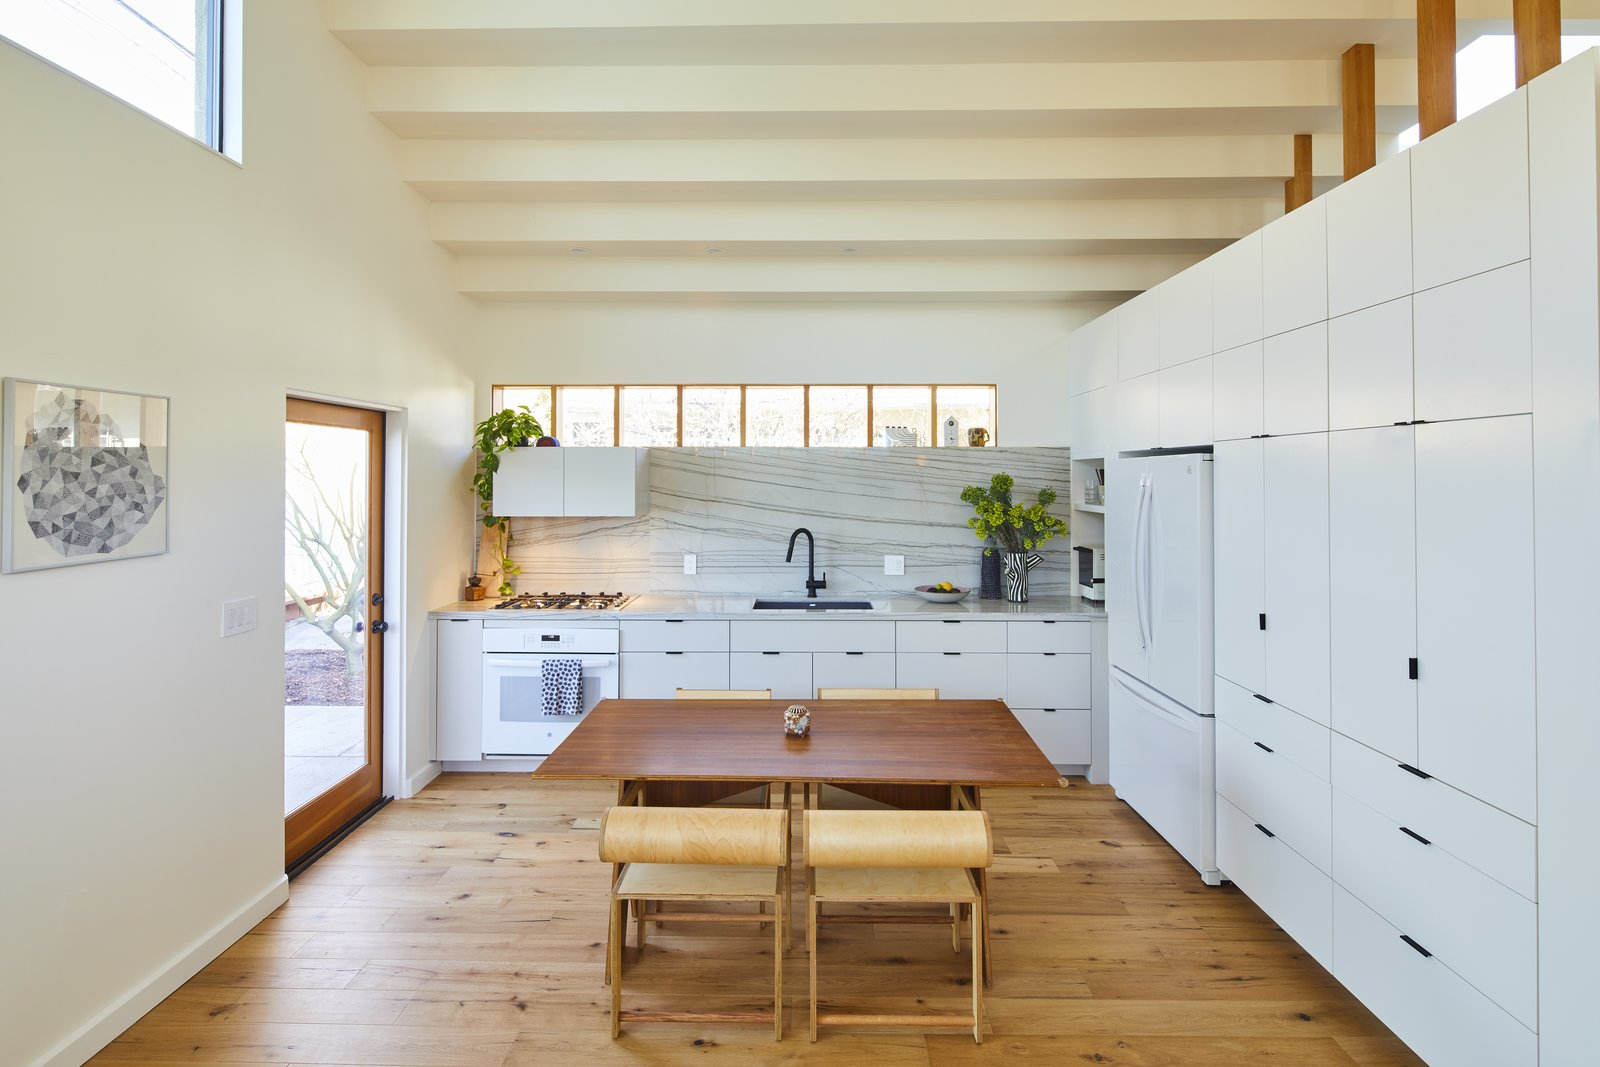 Highland Park ADU by Bunch Design dining room and kitchen